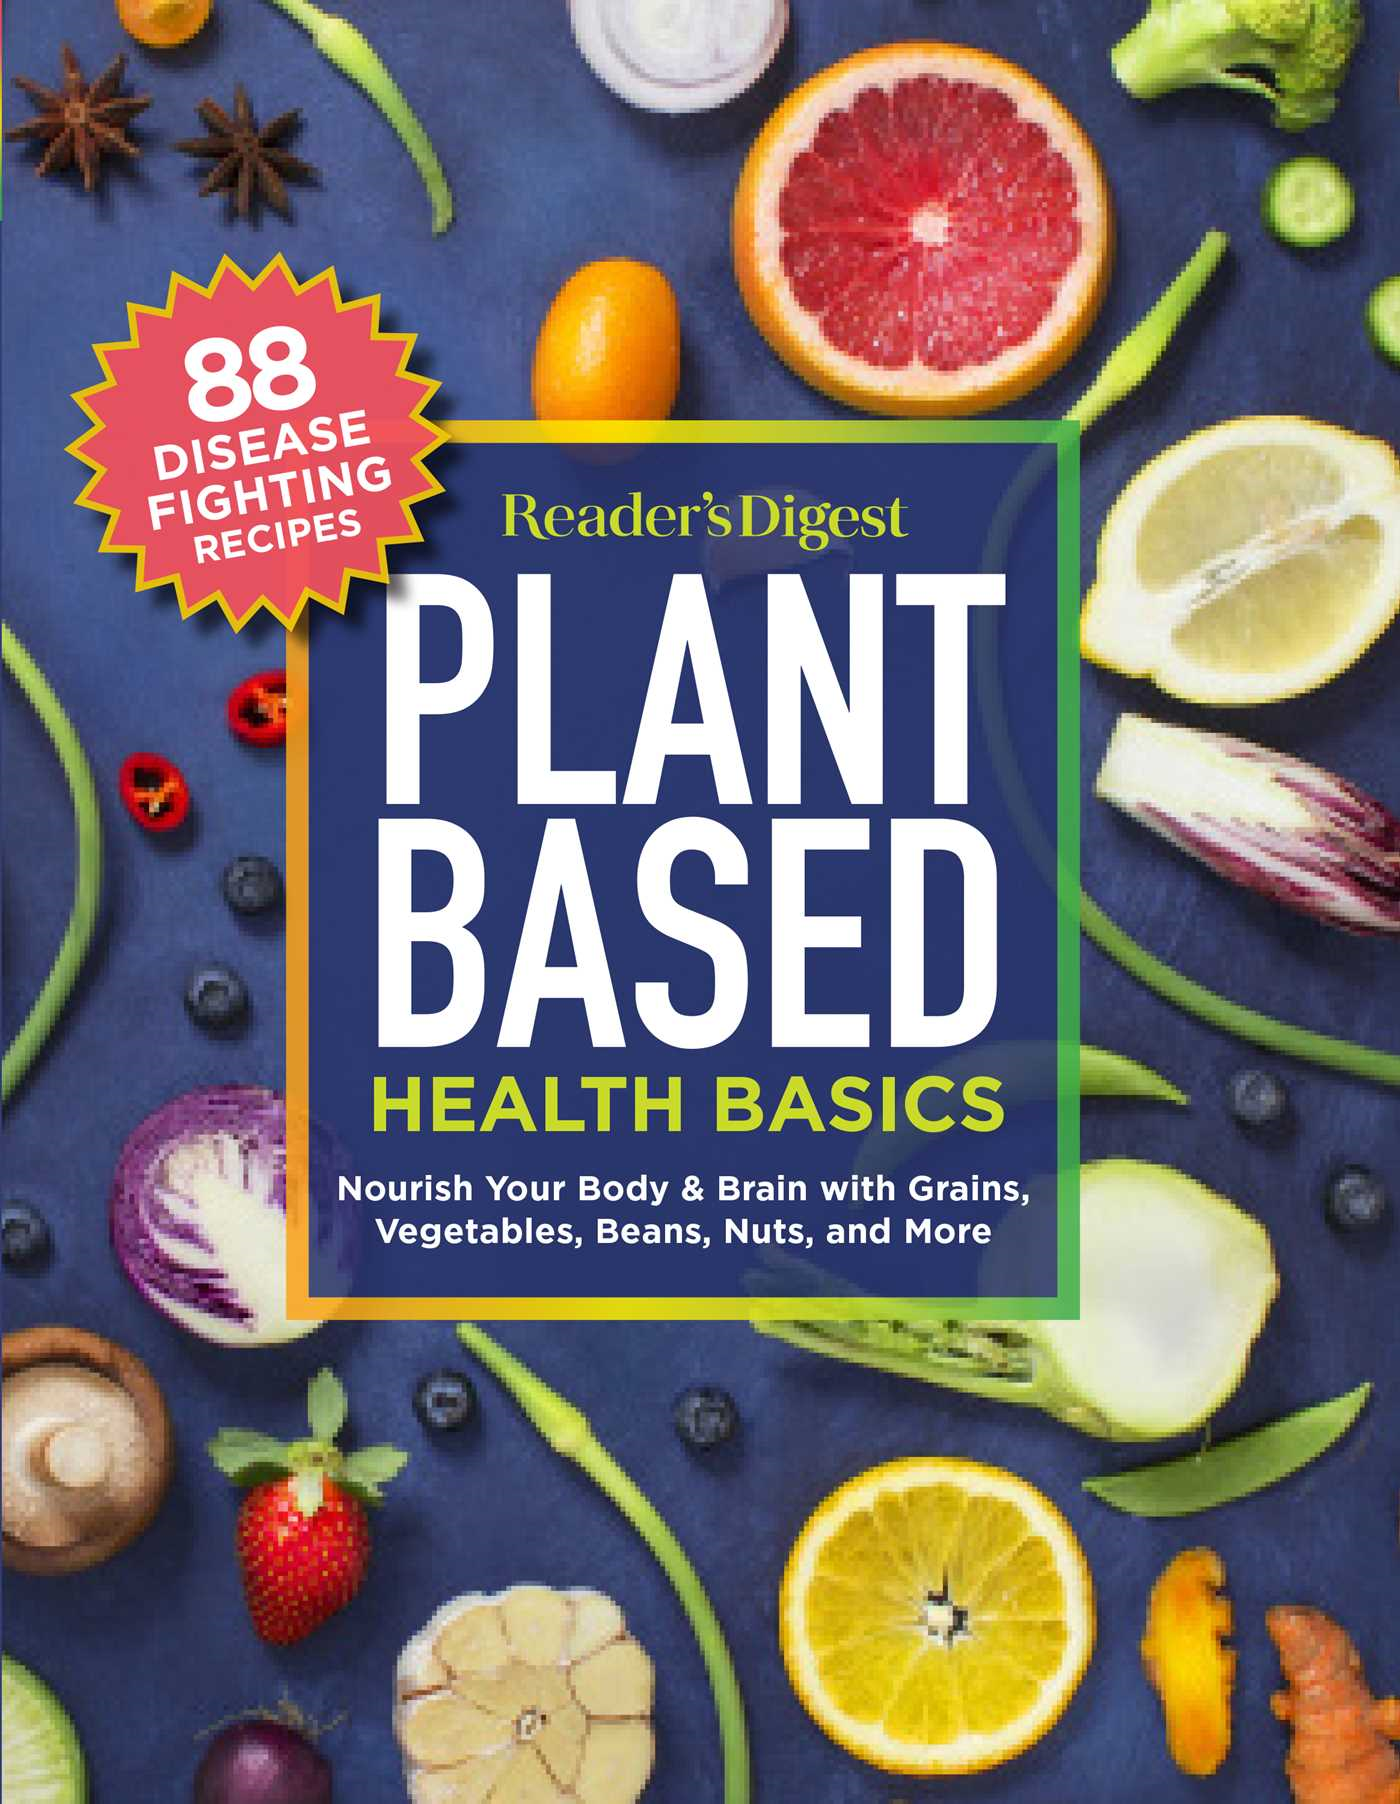 Reader's Digest Plant Based Health Basics